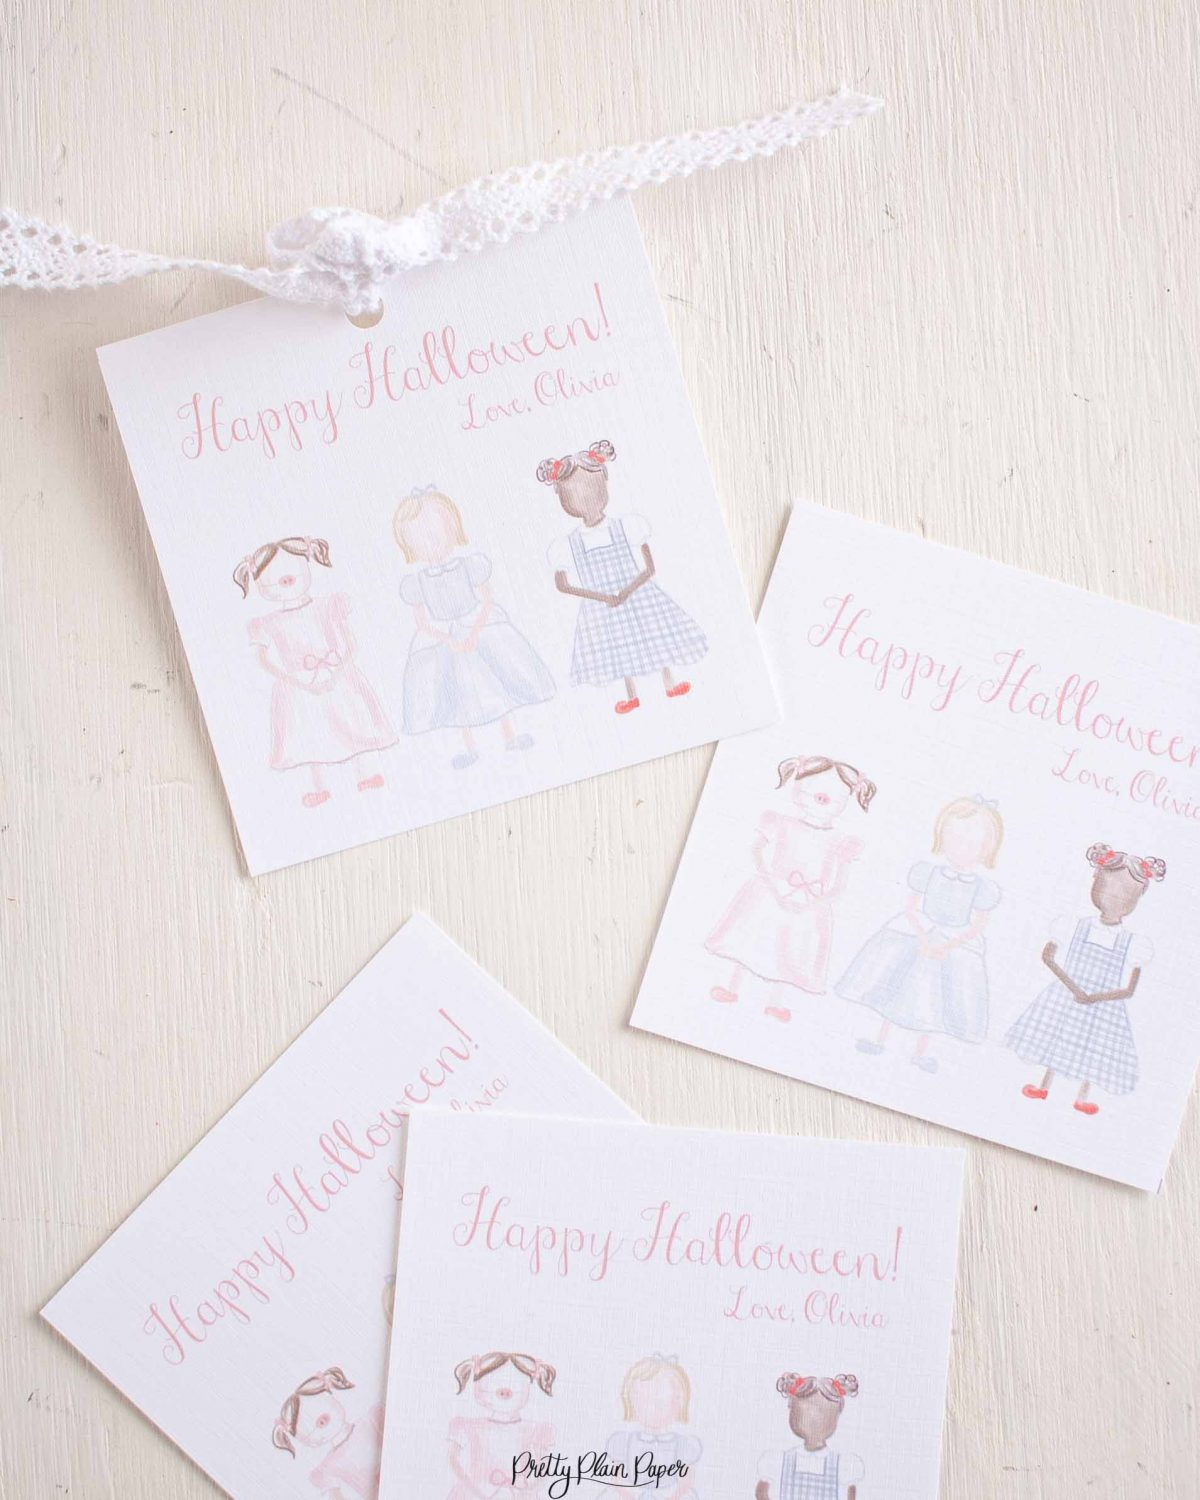 Watercolor Trick or Treaters Little Girls in Costume Halloween Favor, Treat, Gift Tag by Pretty Plain Paper